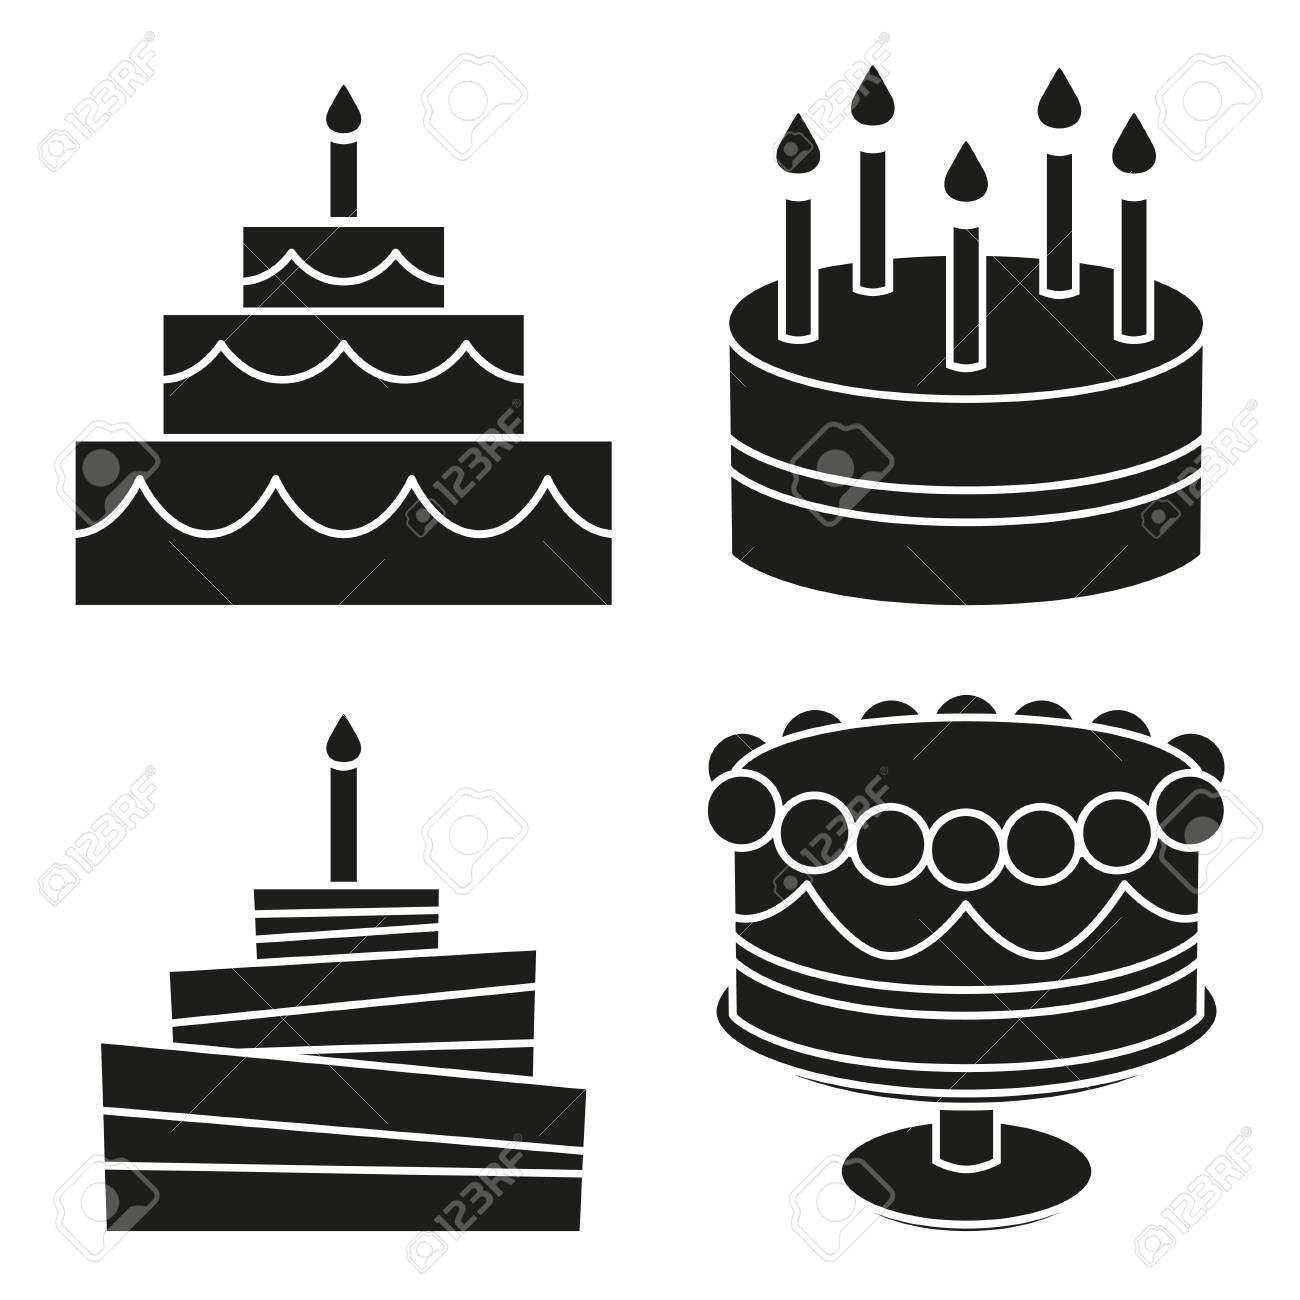 Black And White Birthday Cake Silhouette Set Sweet Food Vector